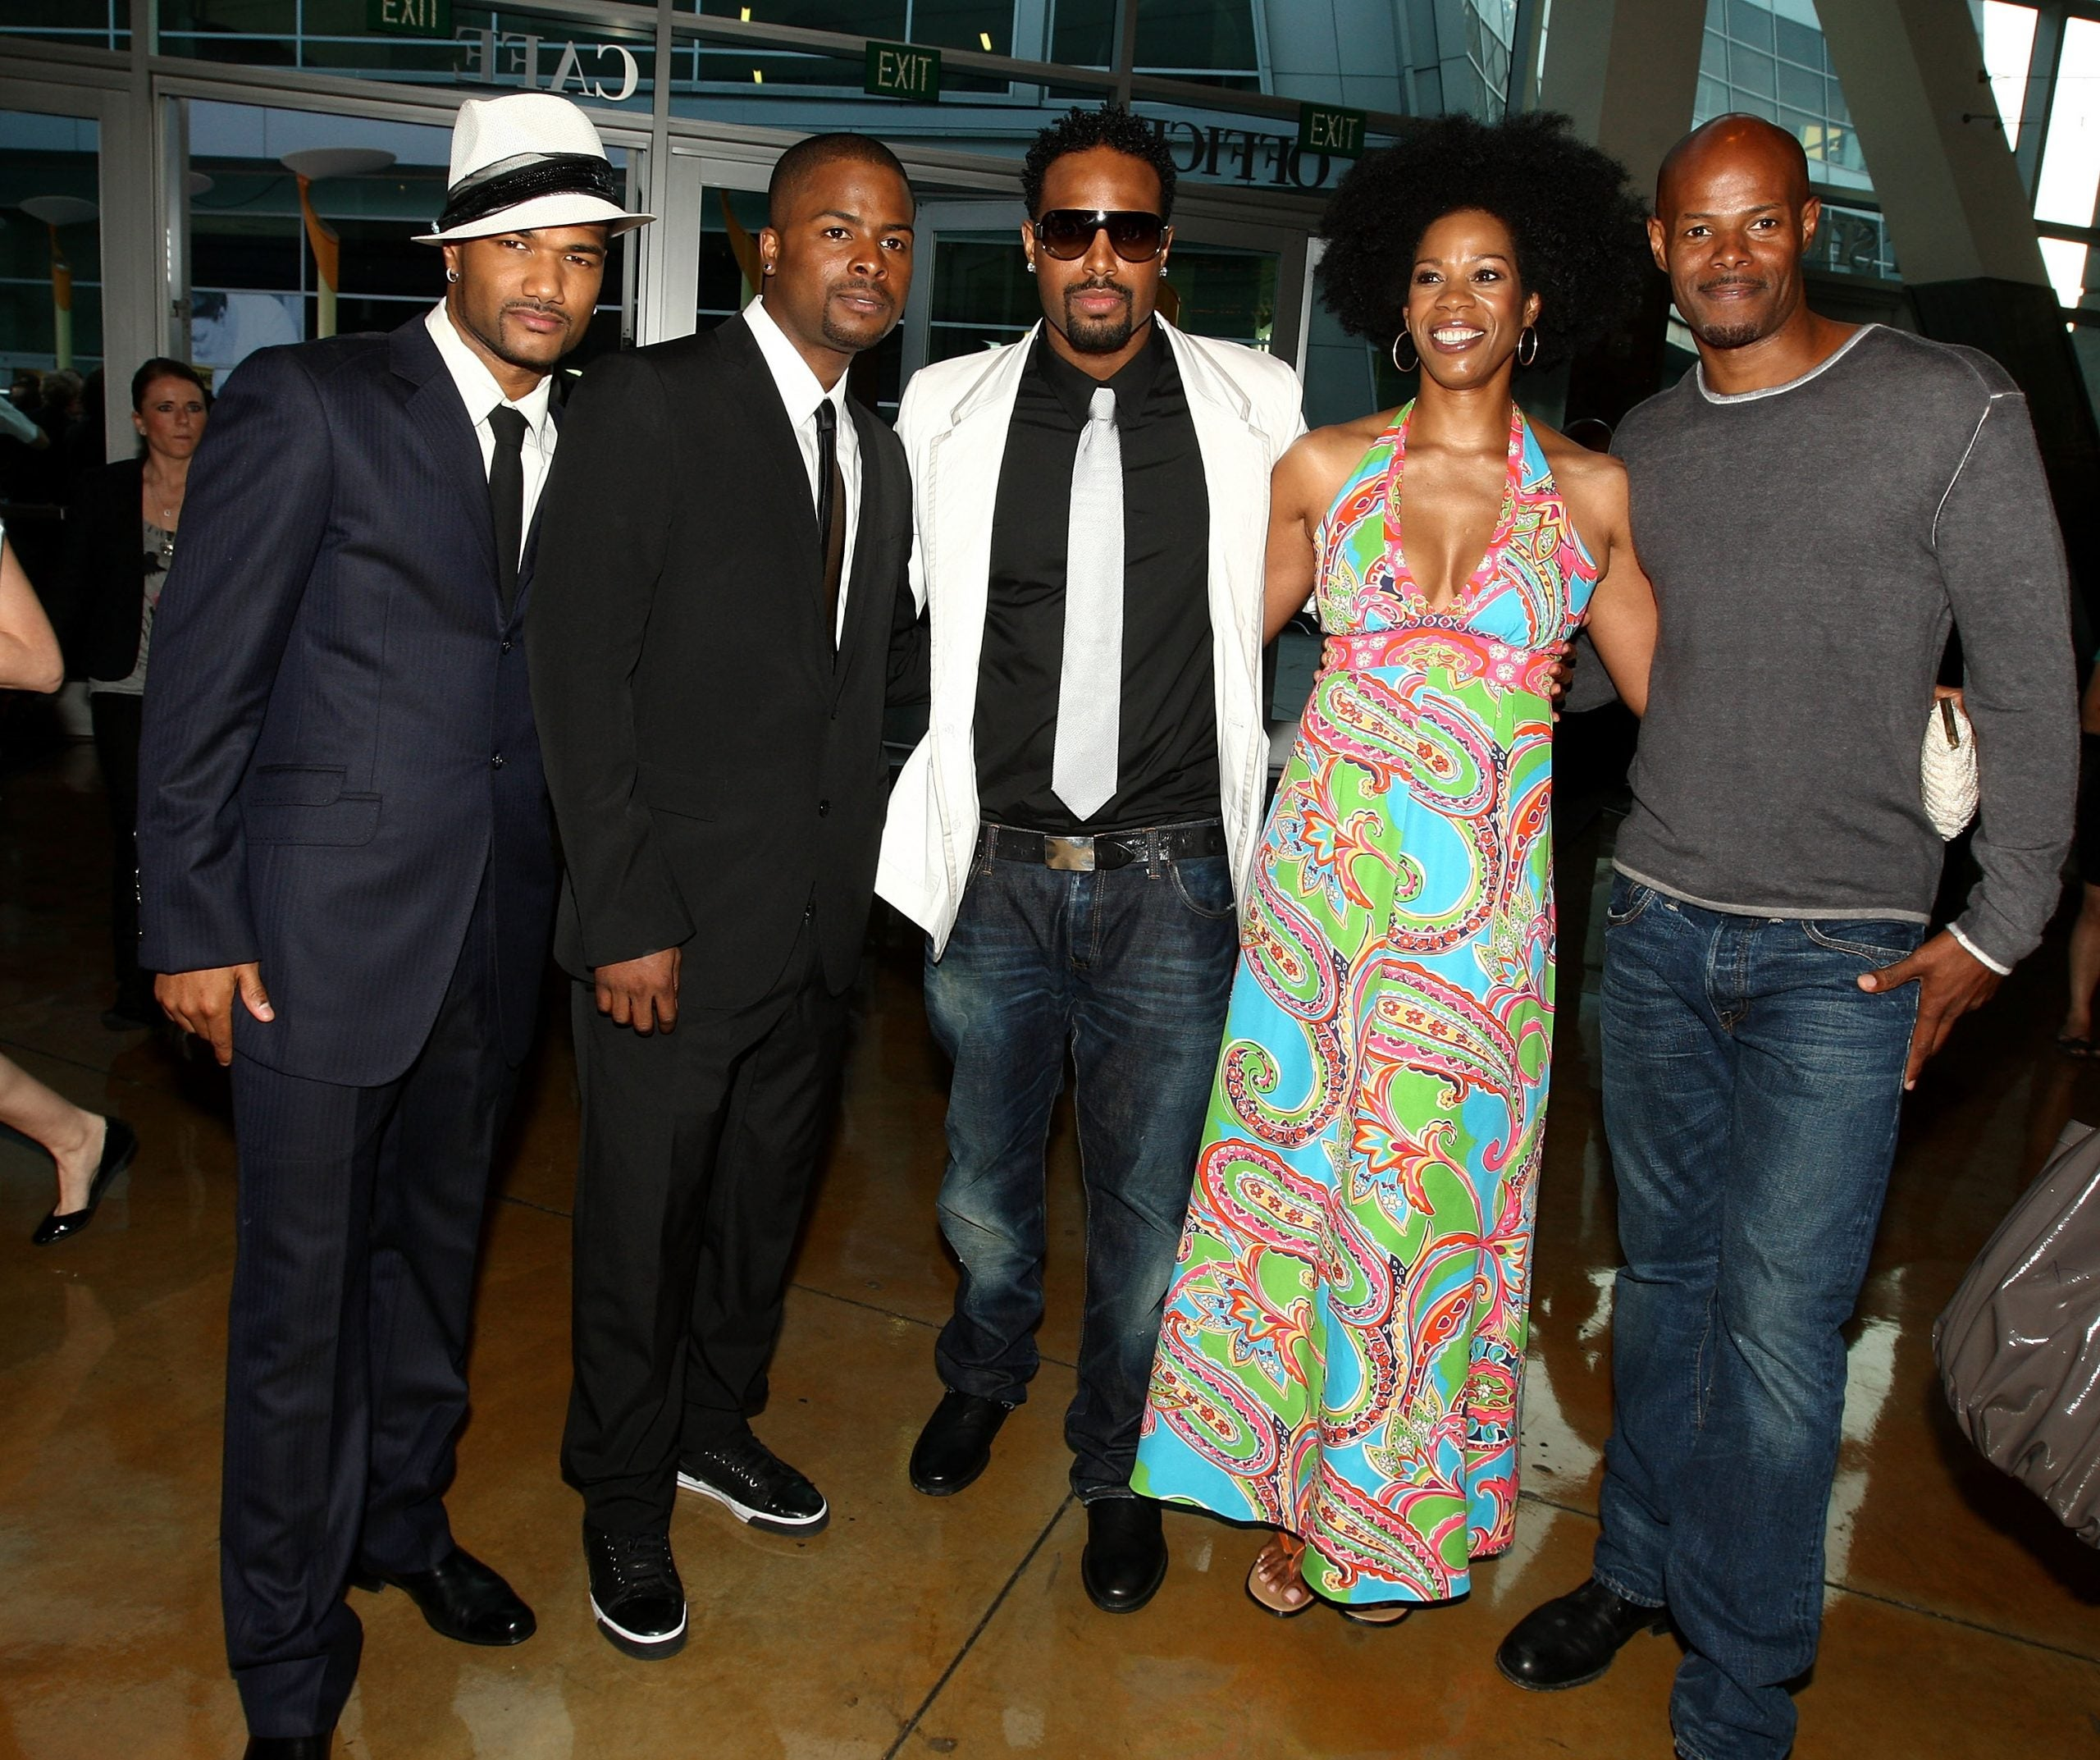 16 Photos Of The Wayans Family Being Black Hollywood Royalty